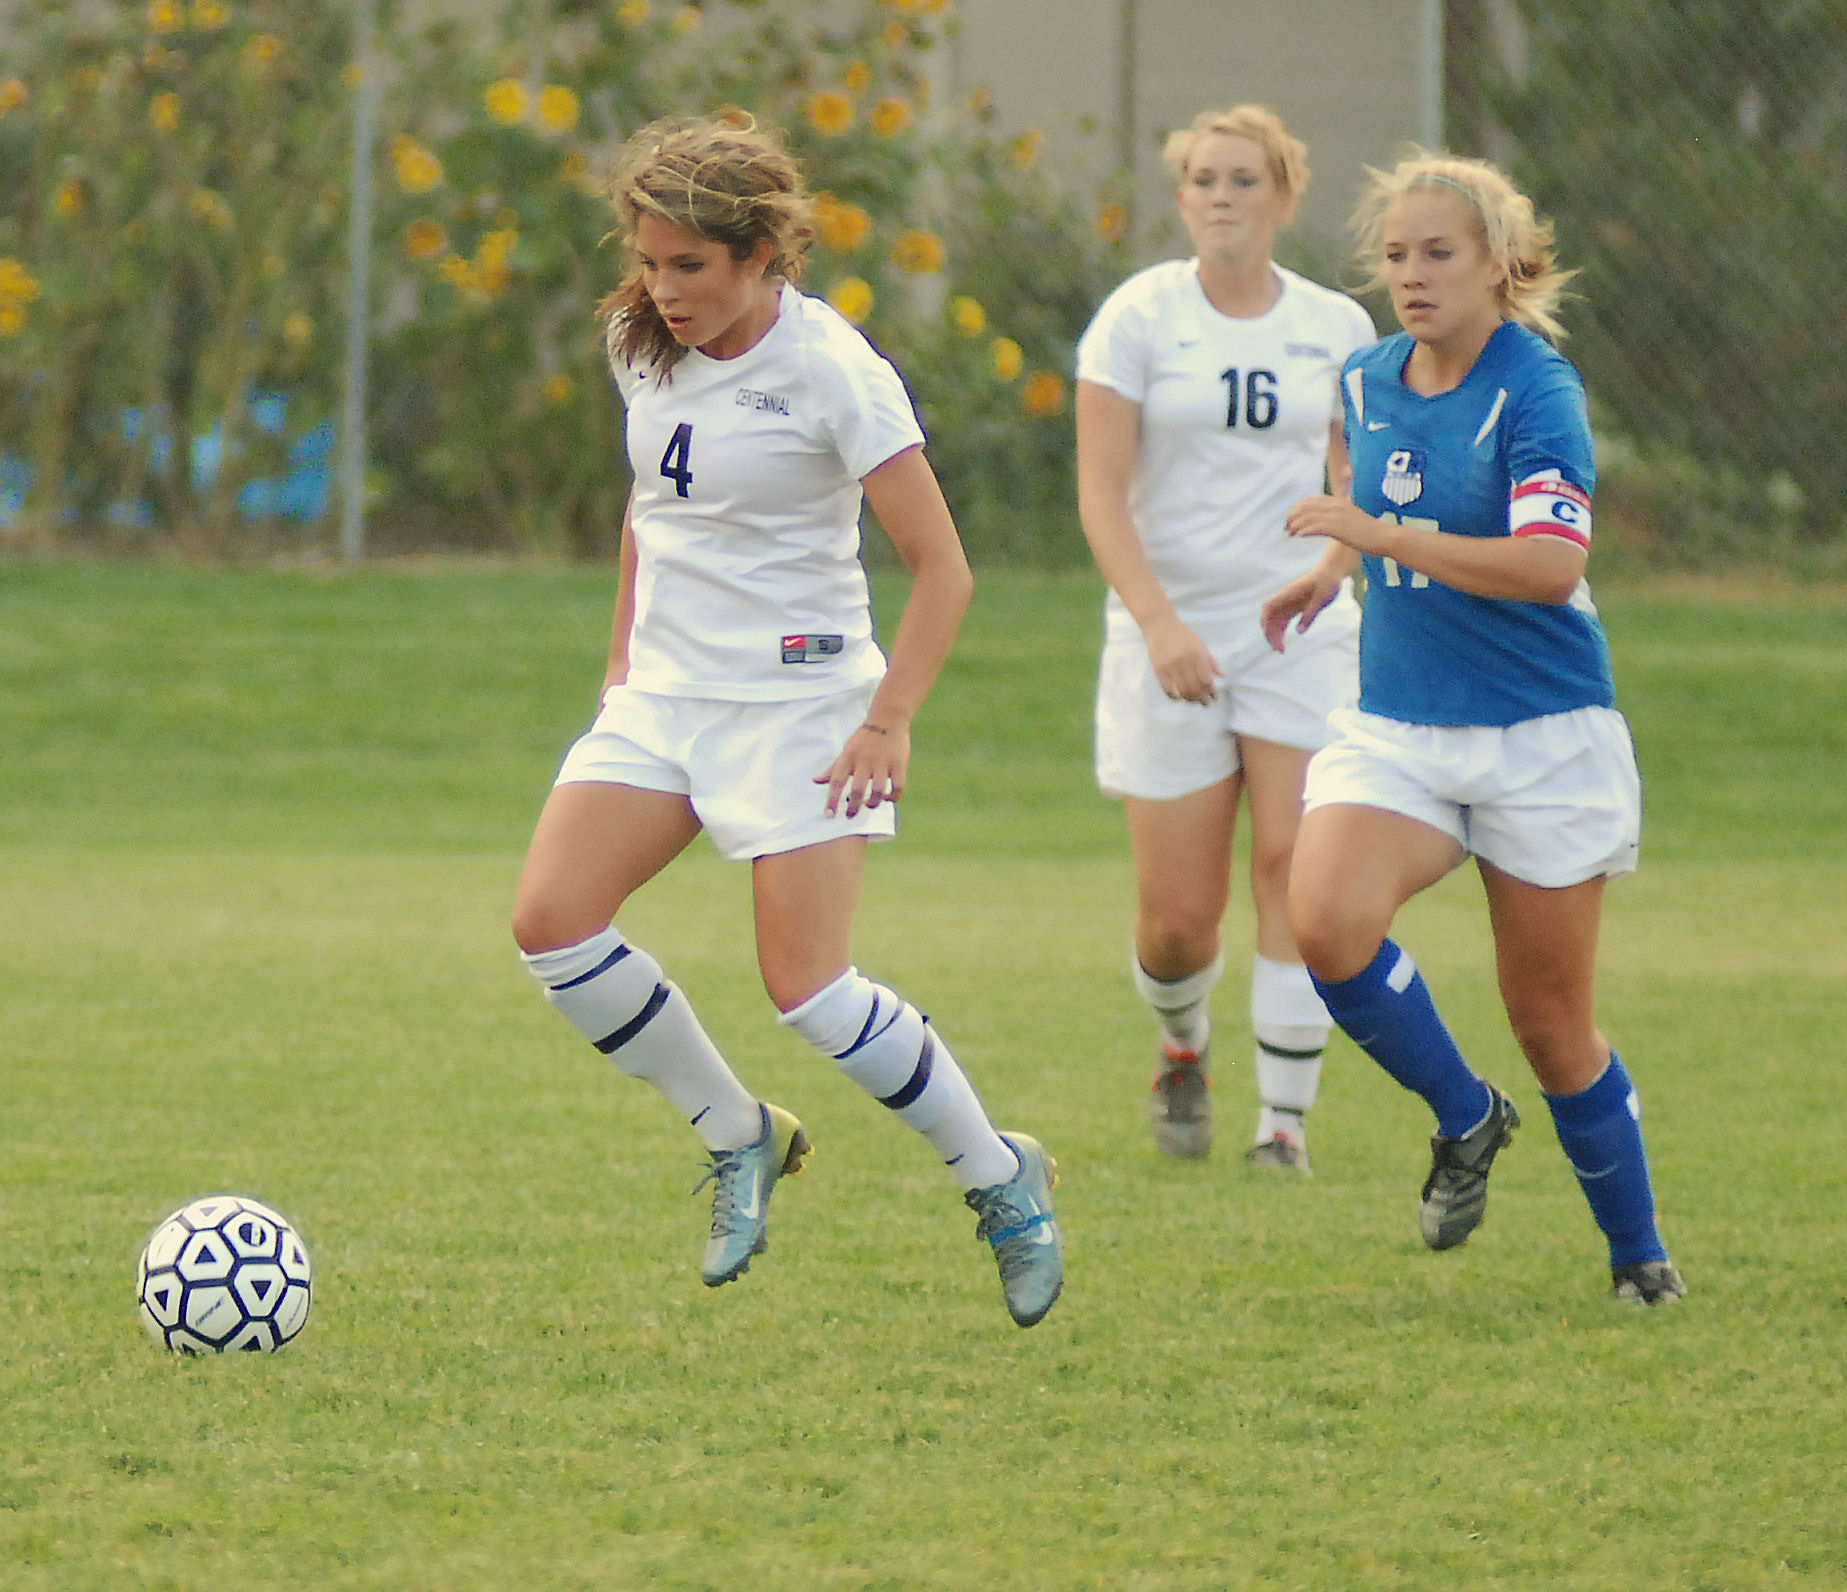 File:Girls playing Soccer.jpg